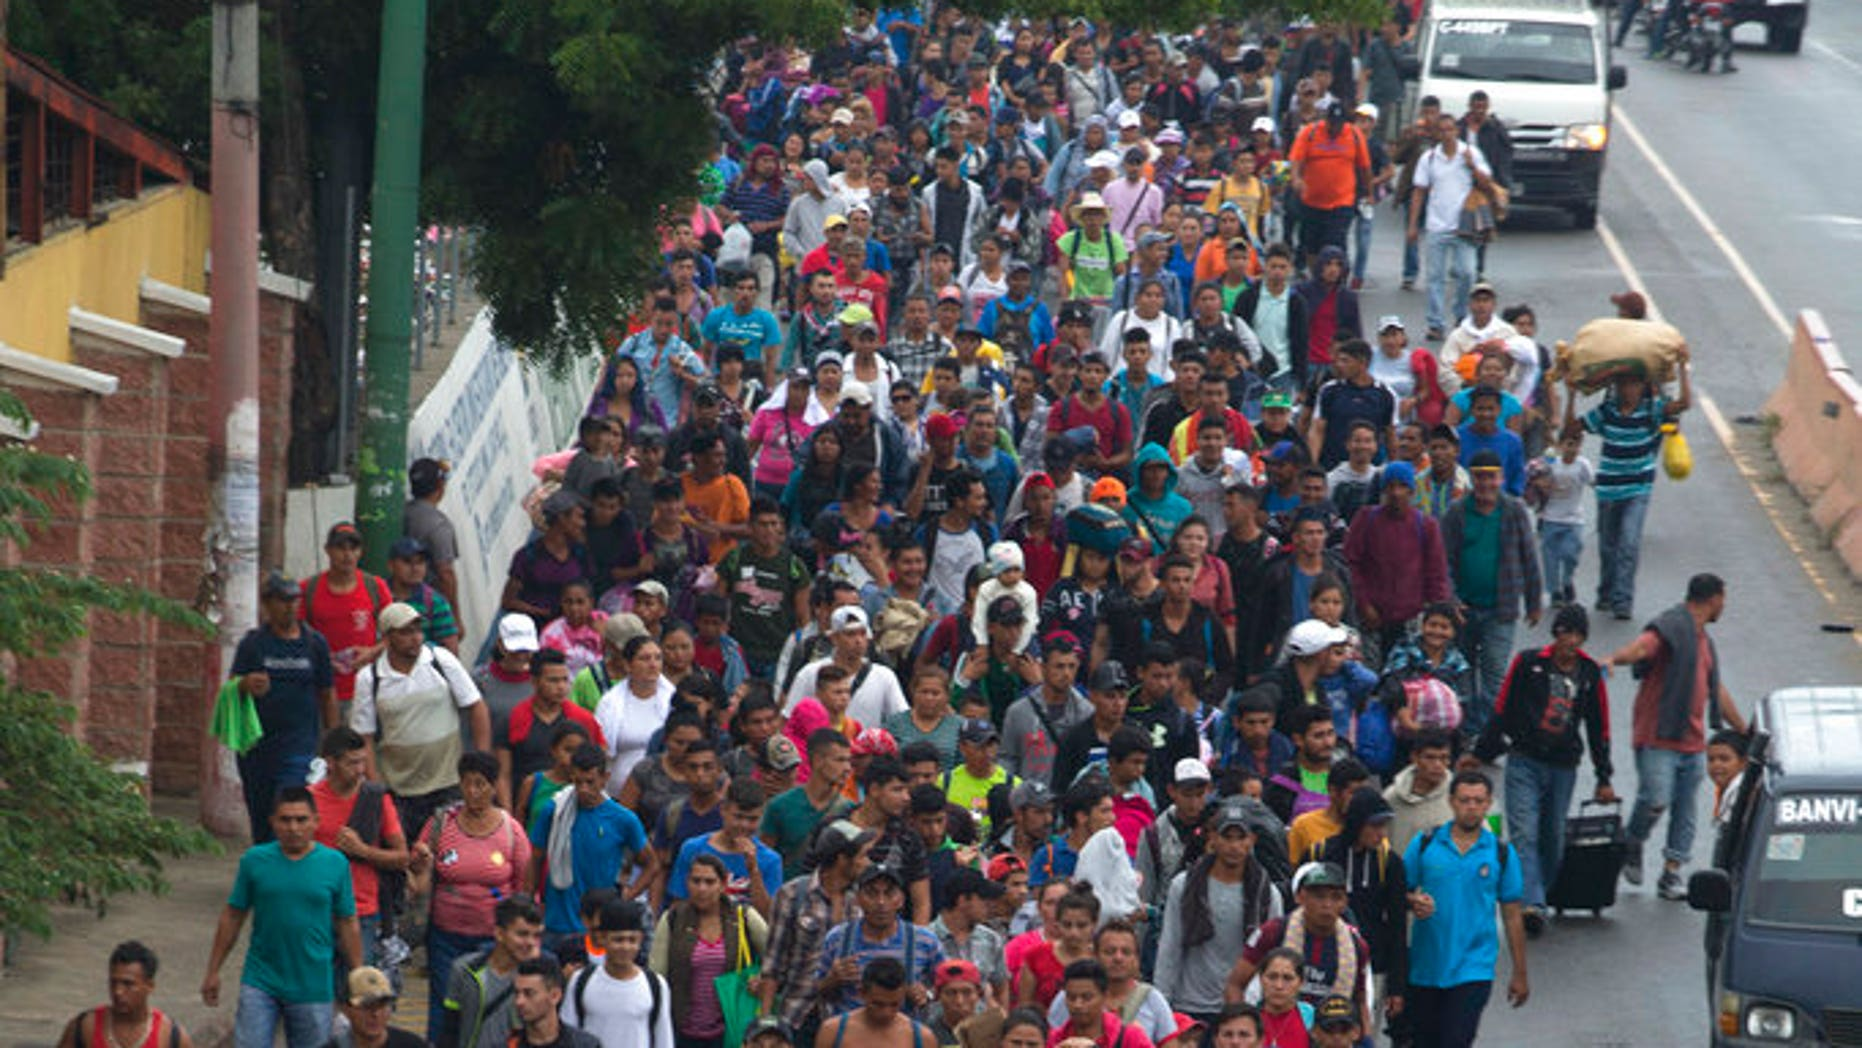 FOX NEWS FIRST: Trump accuses Dems of welcoming caravan before midterms; Rosie O'Donnell wants troops to oust Trump